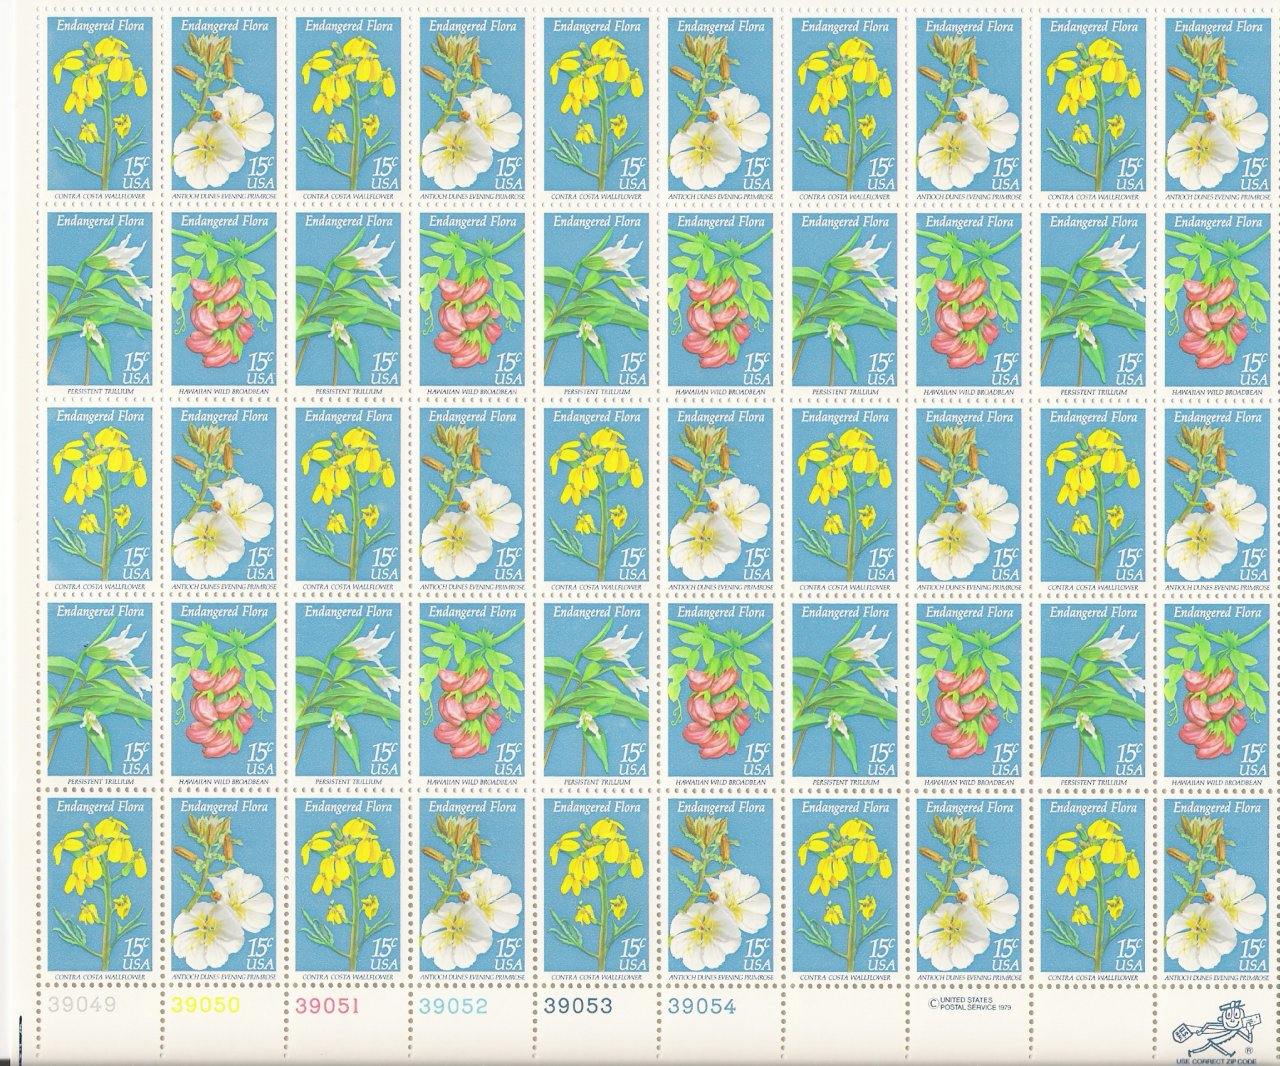 US Scott 1783 1784 1785 1786 - Sheet of 50 - Endangered Flora - Mint Never Hinged